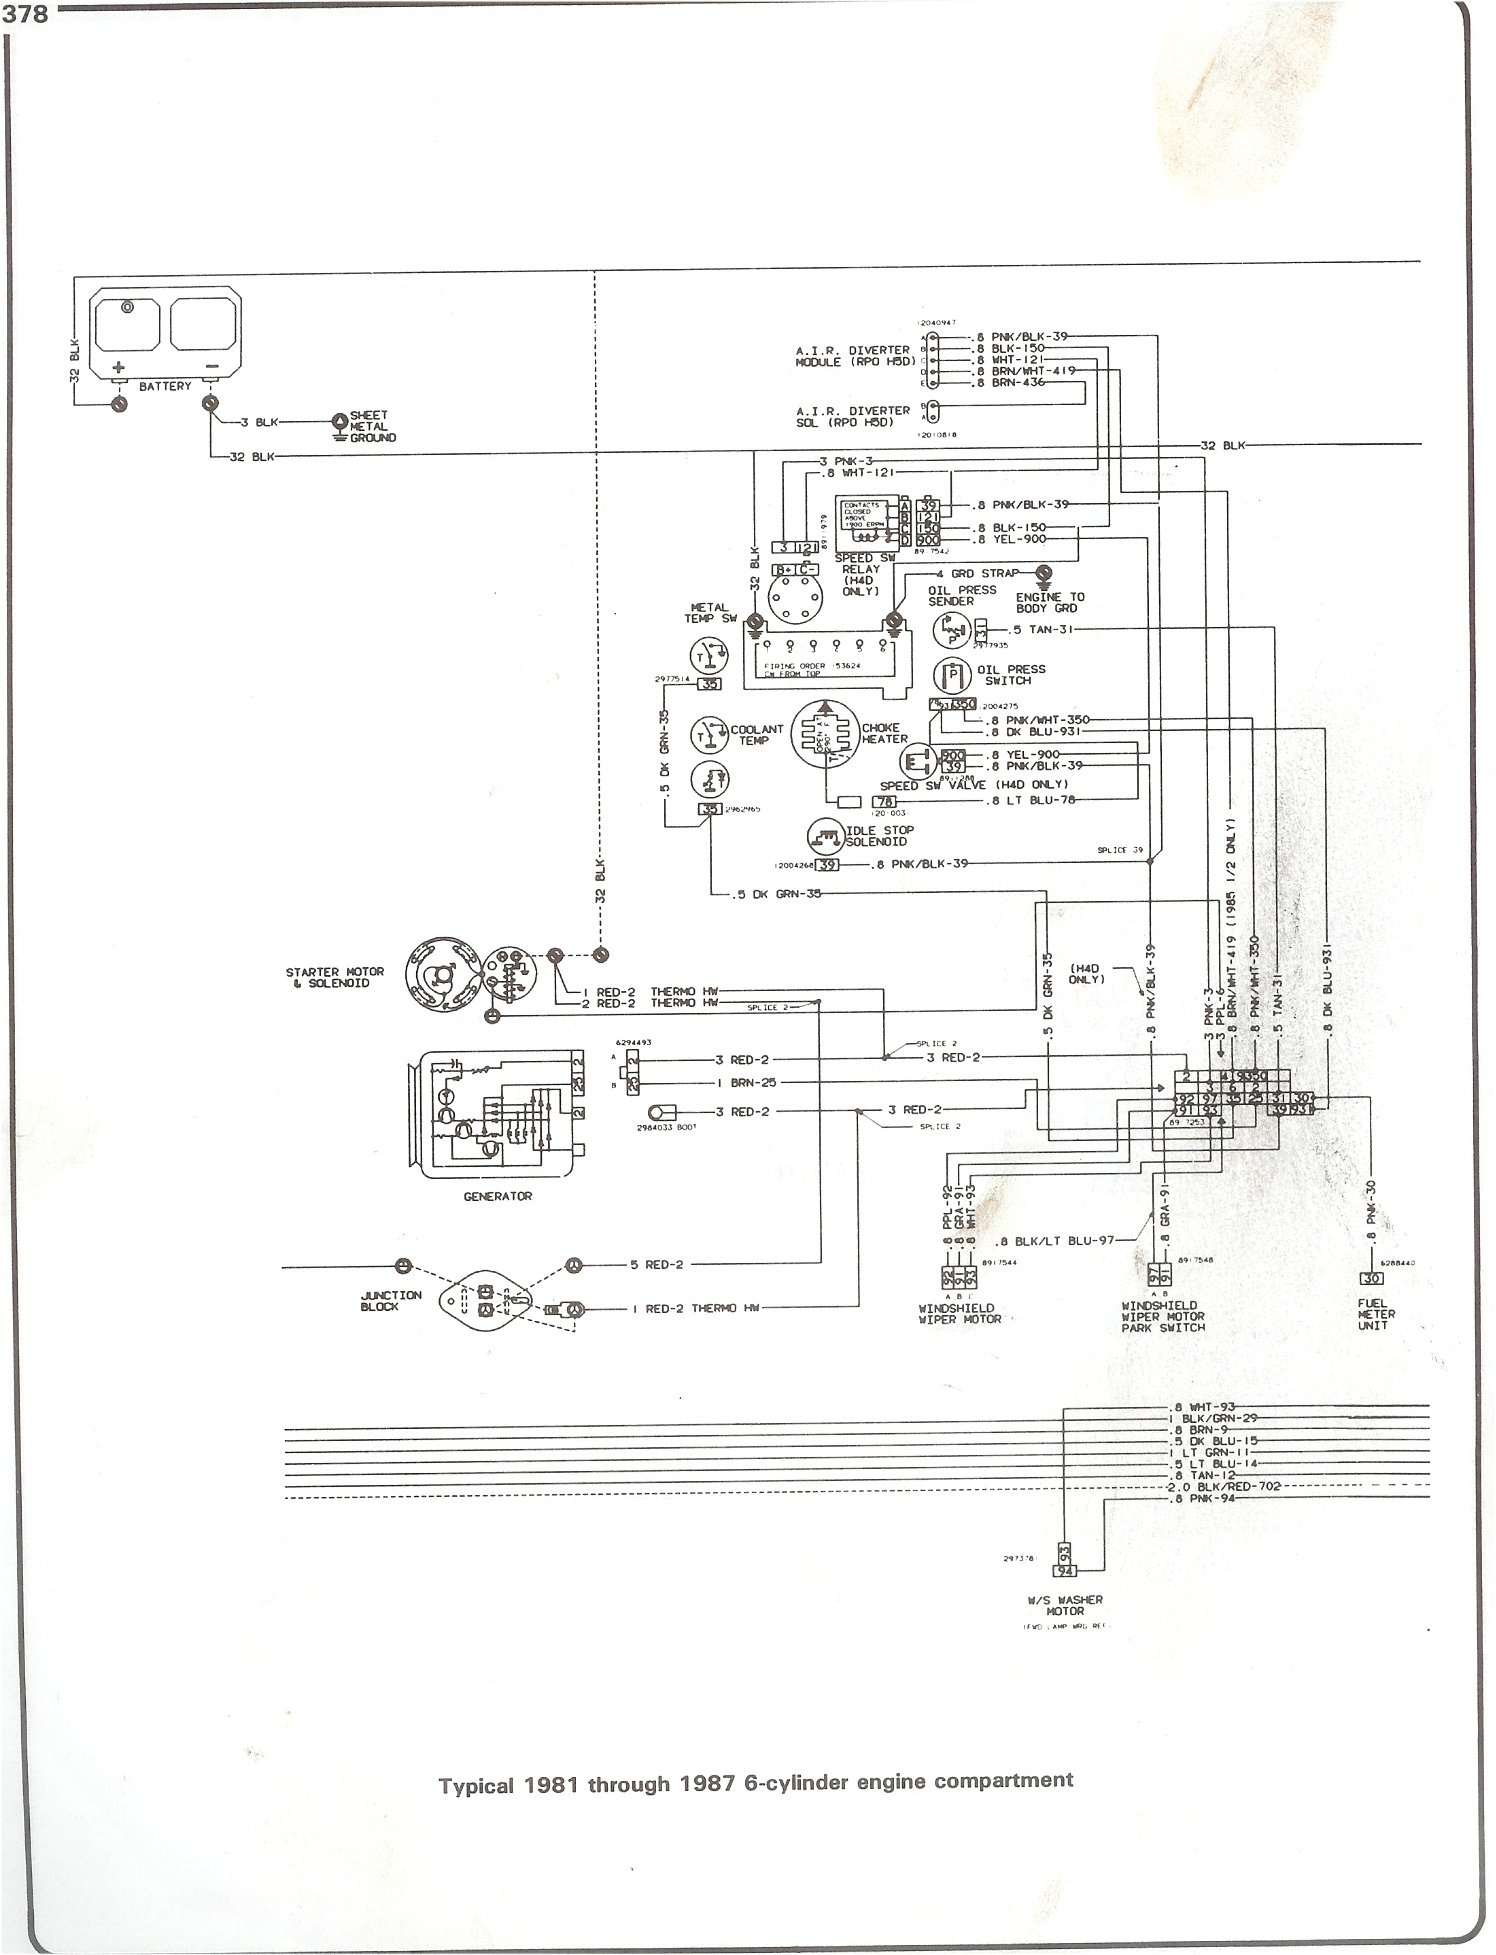 1973 C10 Fuse Box Wiring Library Harness 1969 Corvette Dash Diagram On Camaro Gmc Diagrams